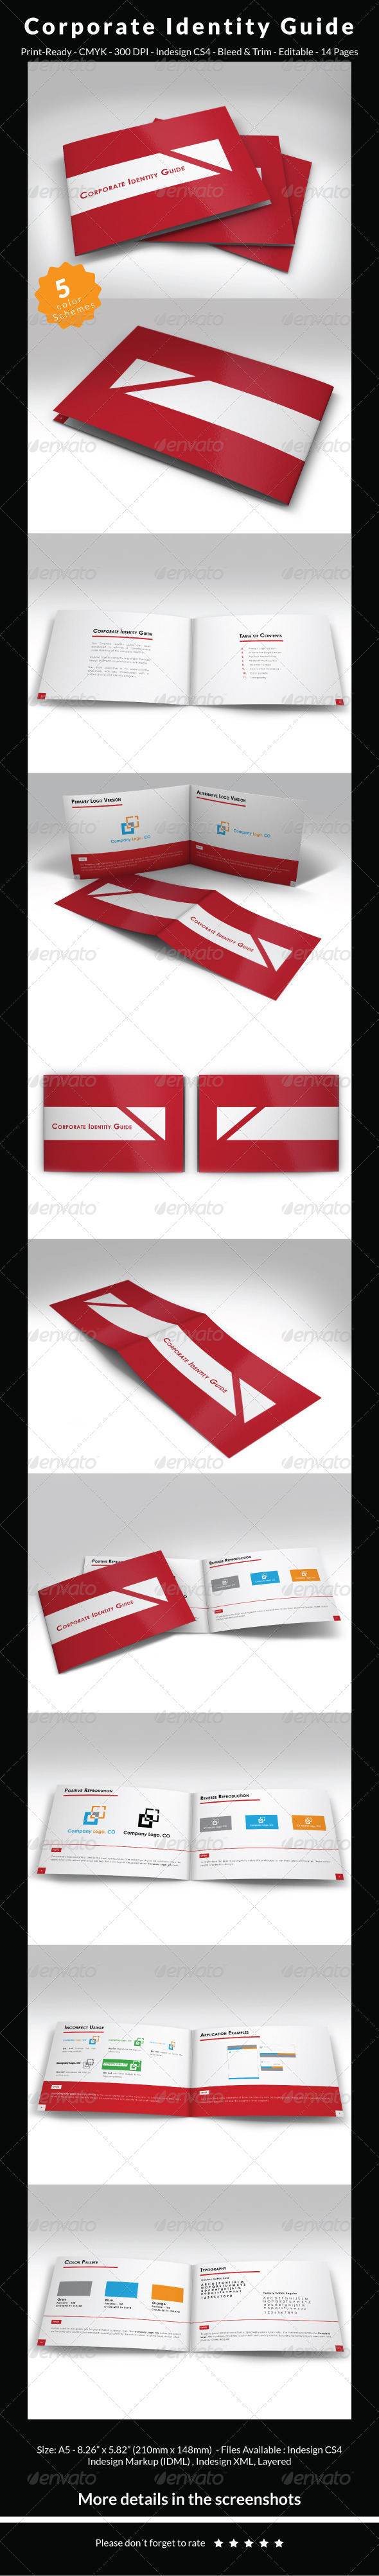 Corporate Identity Guide Template - Miscellaneous Print Templates